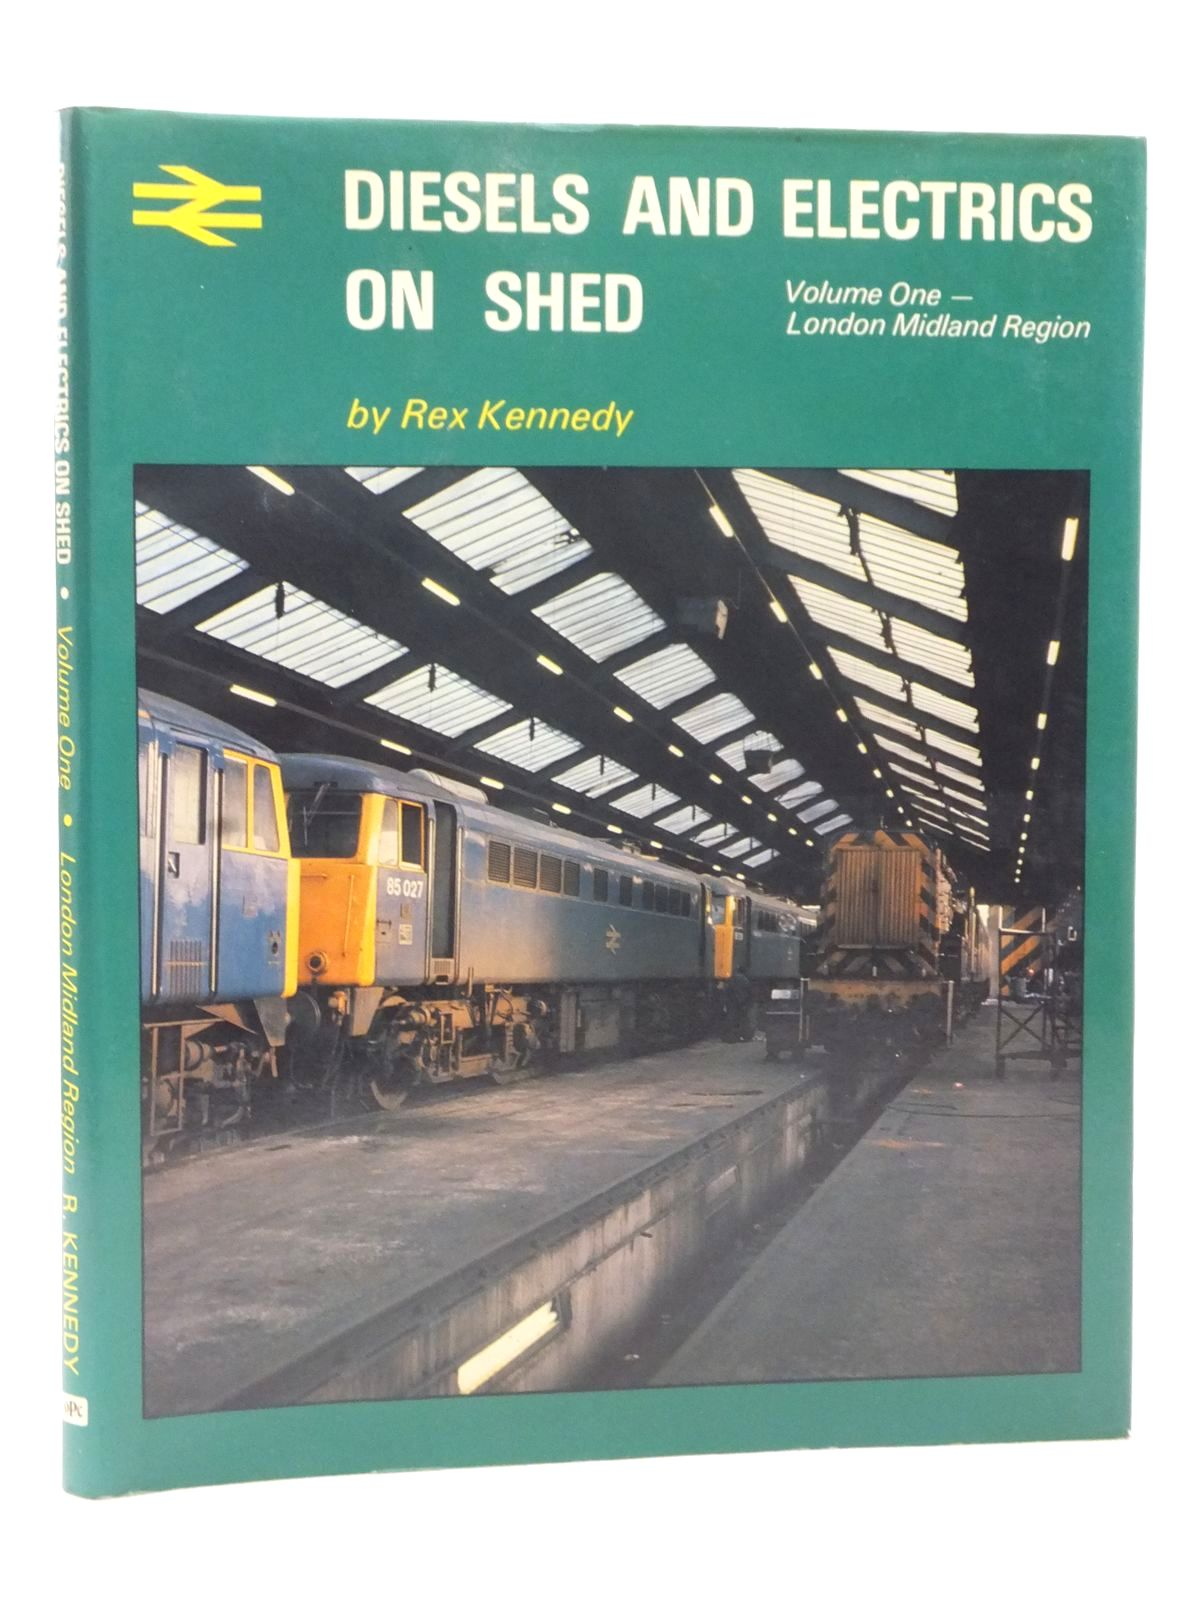 Photo of DIESELS AND ELECTRICS ON SHED VOLUME ONE LONDON MIDLAND REGION written by Kennedy, Rex published by Oxford Publishing (STOCK CODE: 1608983)  for sale by Stella & Rose's Books